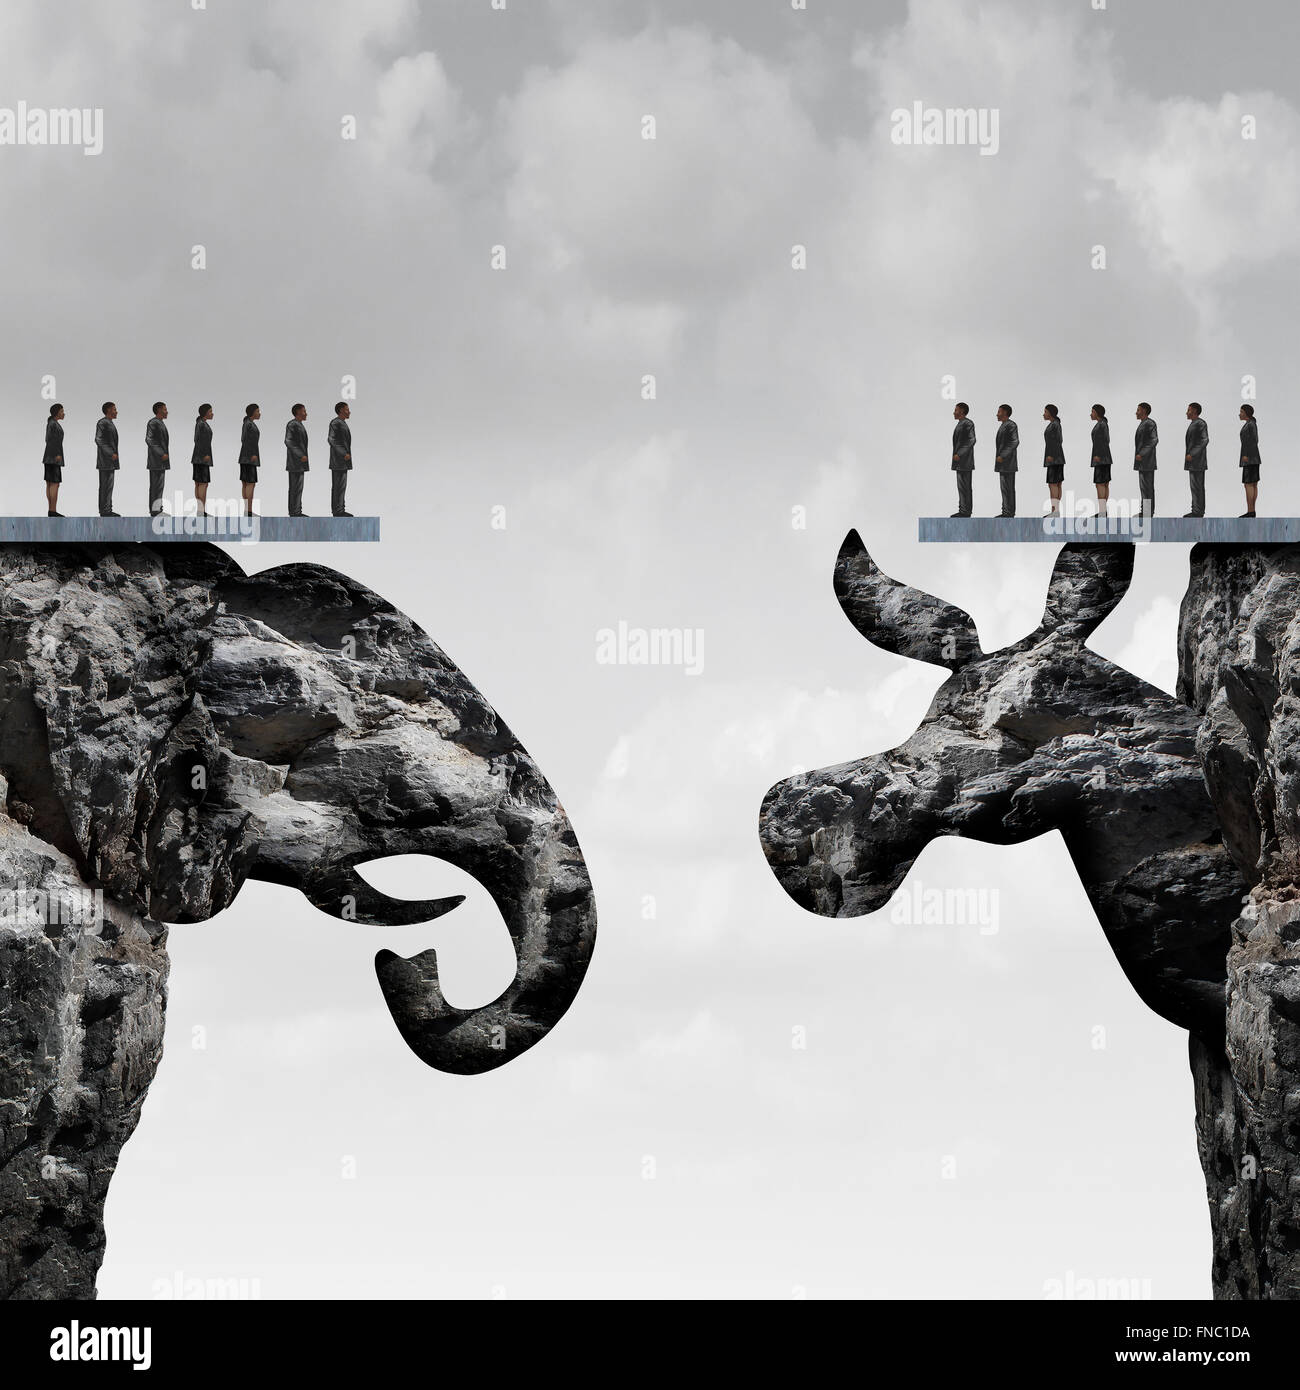 Republican democrat political division concept and American election fight as as two mountain cliff sculptures shaped - Stock Image